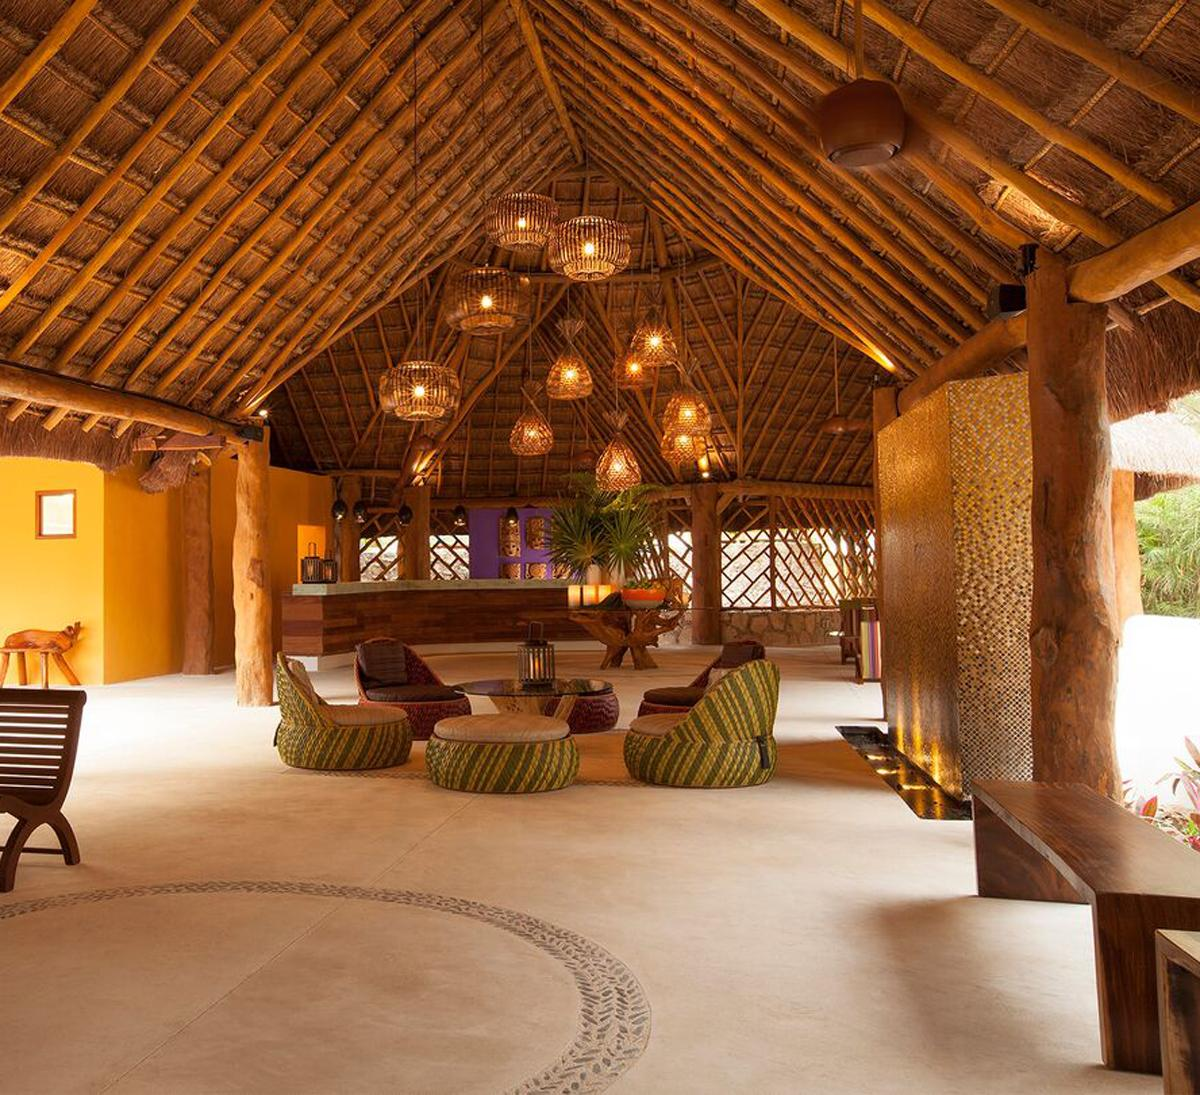 The expansion of the resort added 74 palapa-style bungalows and a new 2,500sq ft (232sq m) Mayan-inspired Revive Spa / Mahekal Beach Resort